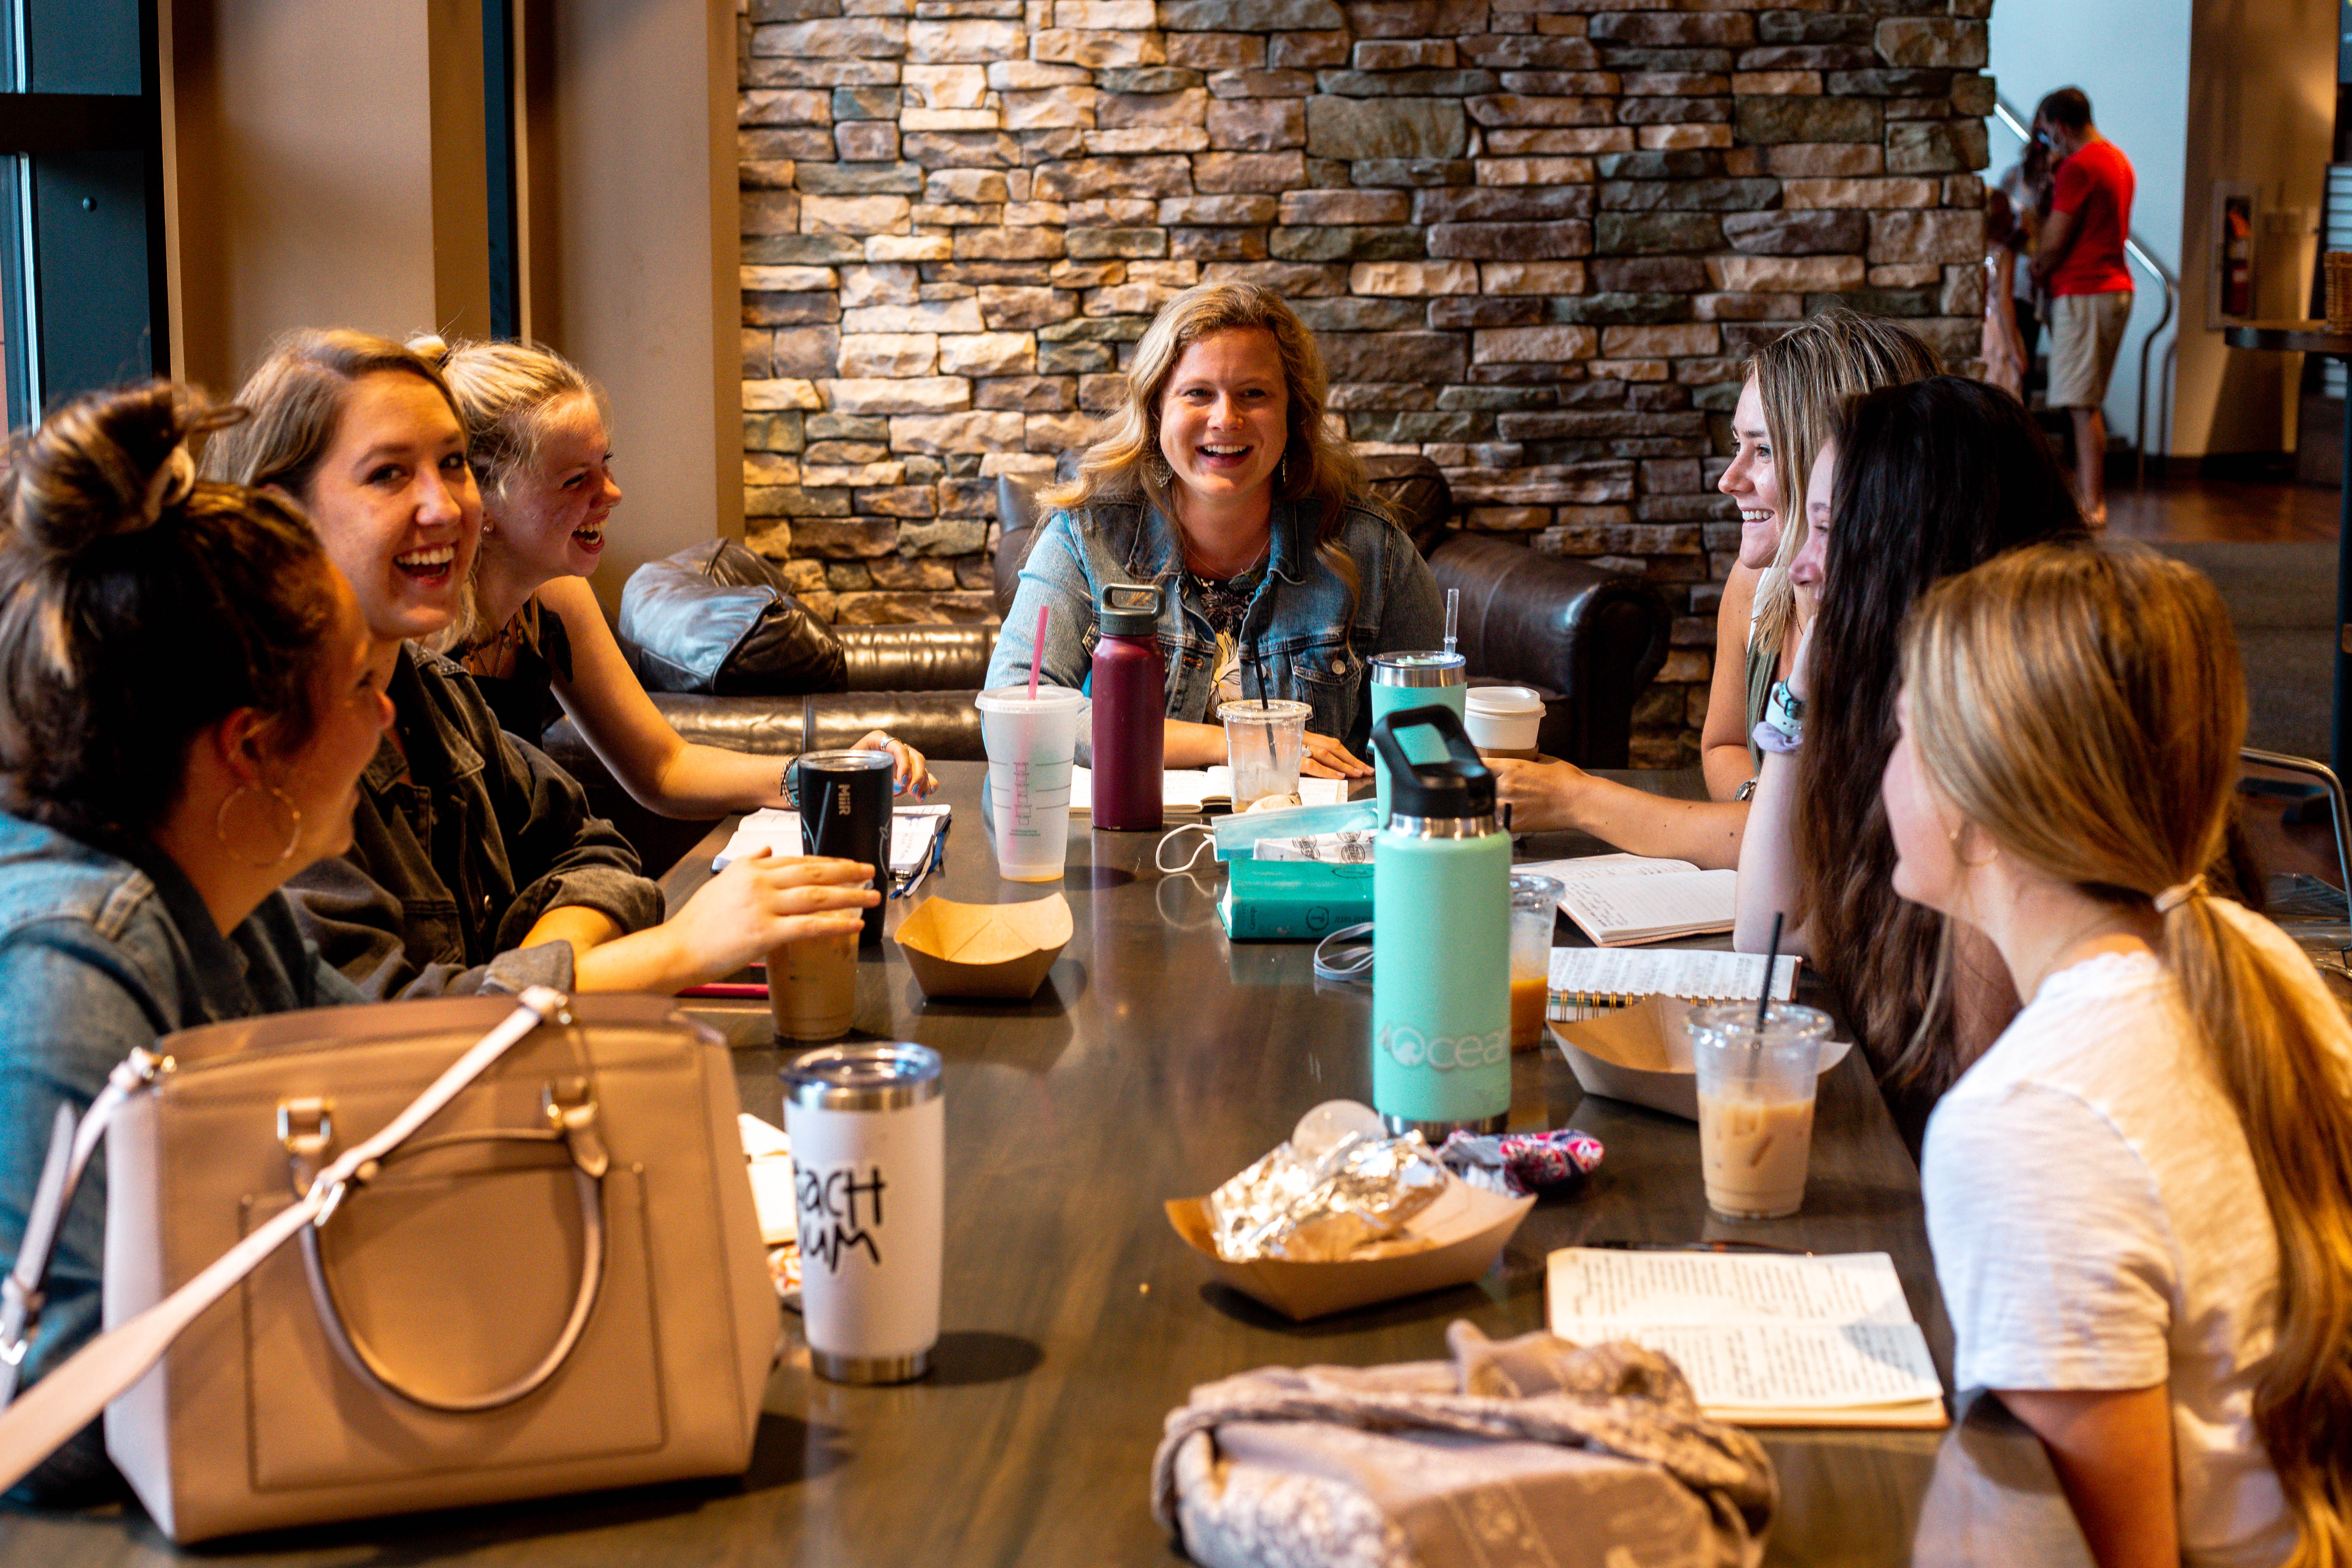 A happy group of women sitting at a table enjoying fellowship.